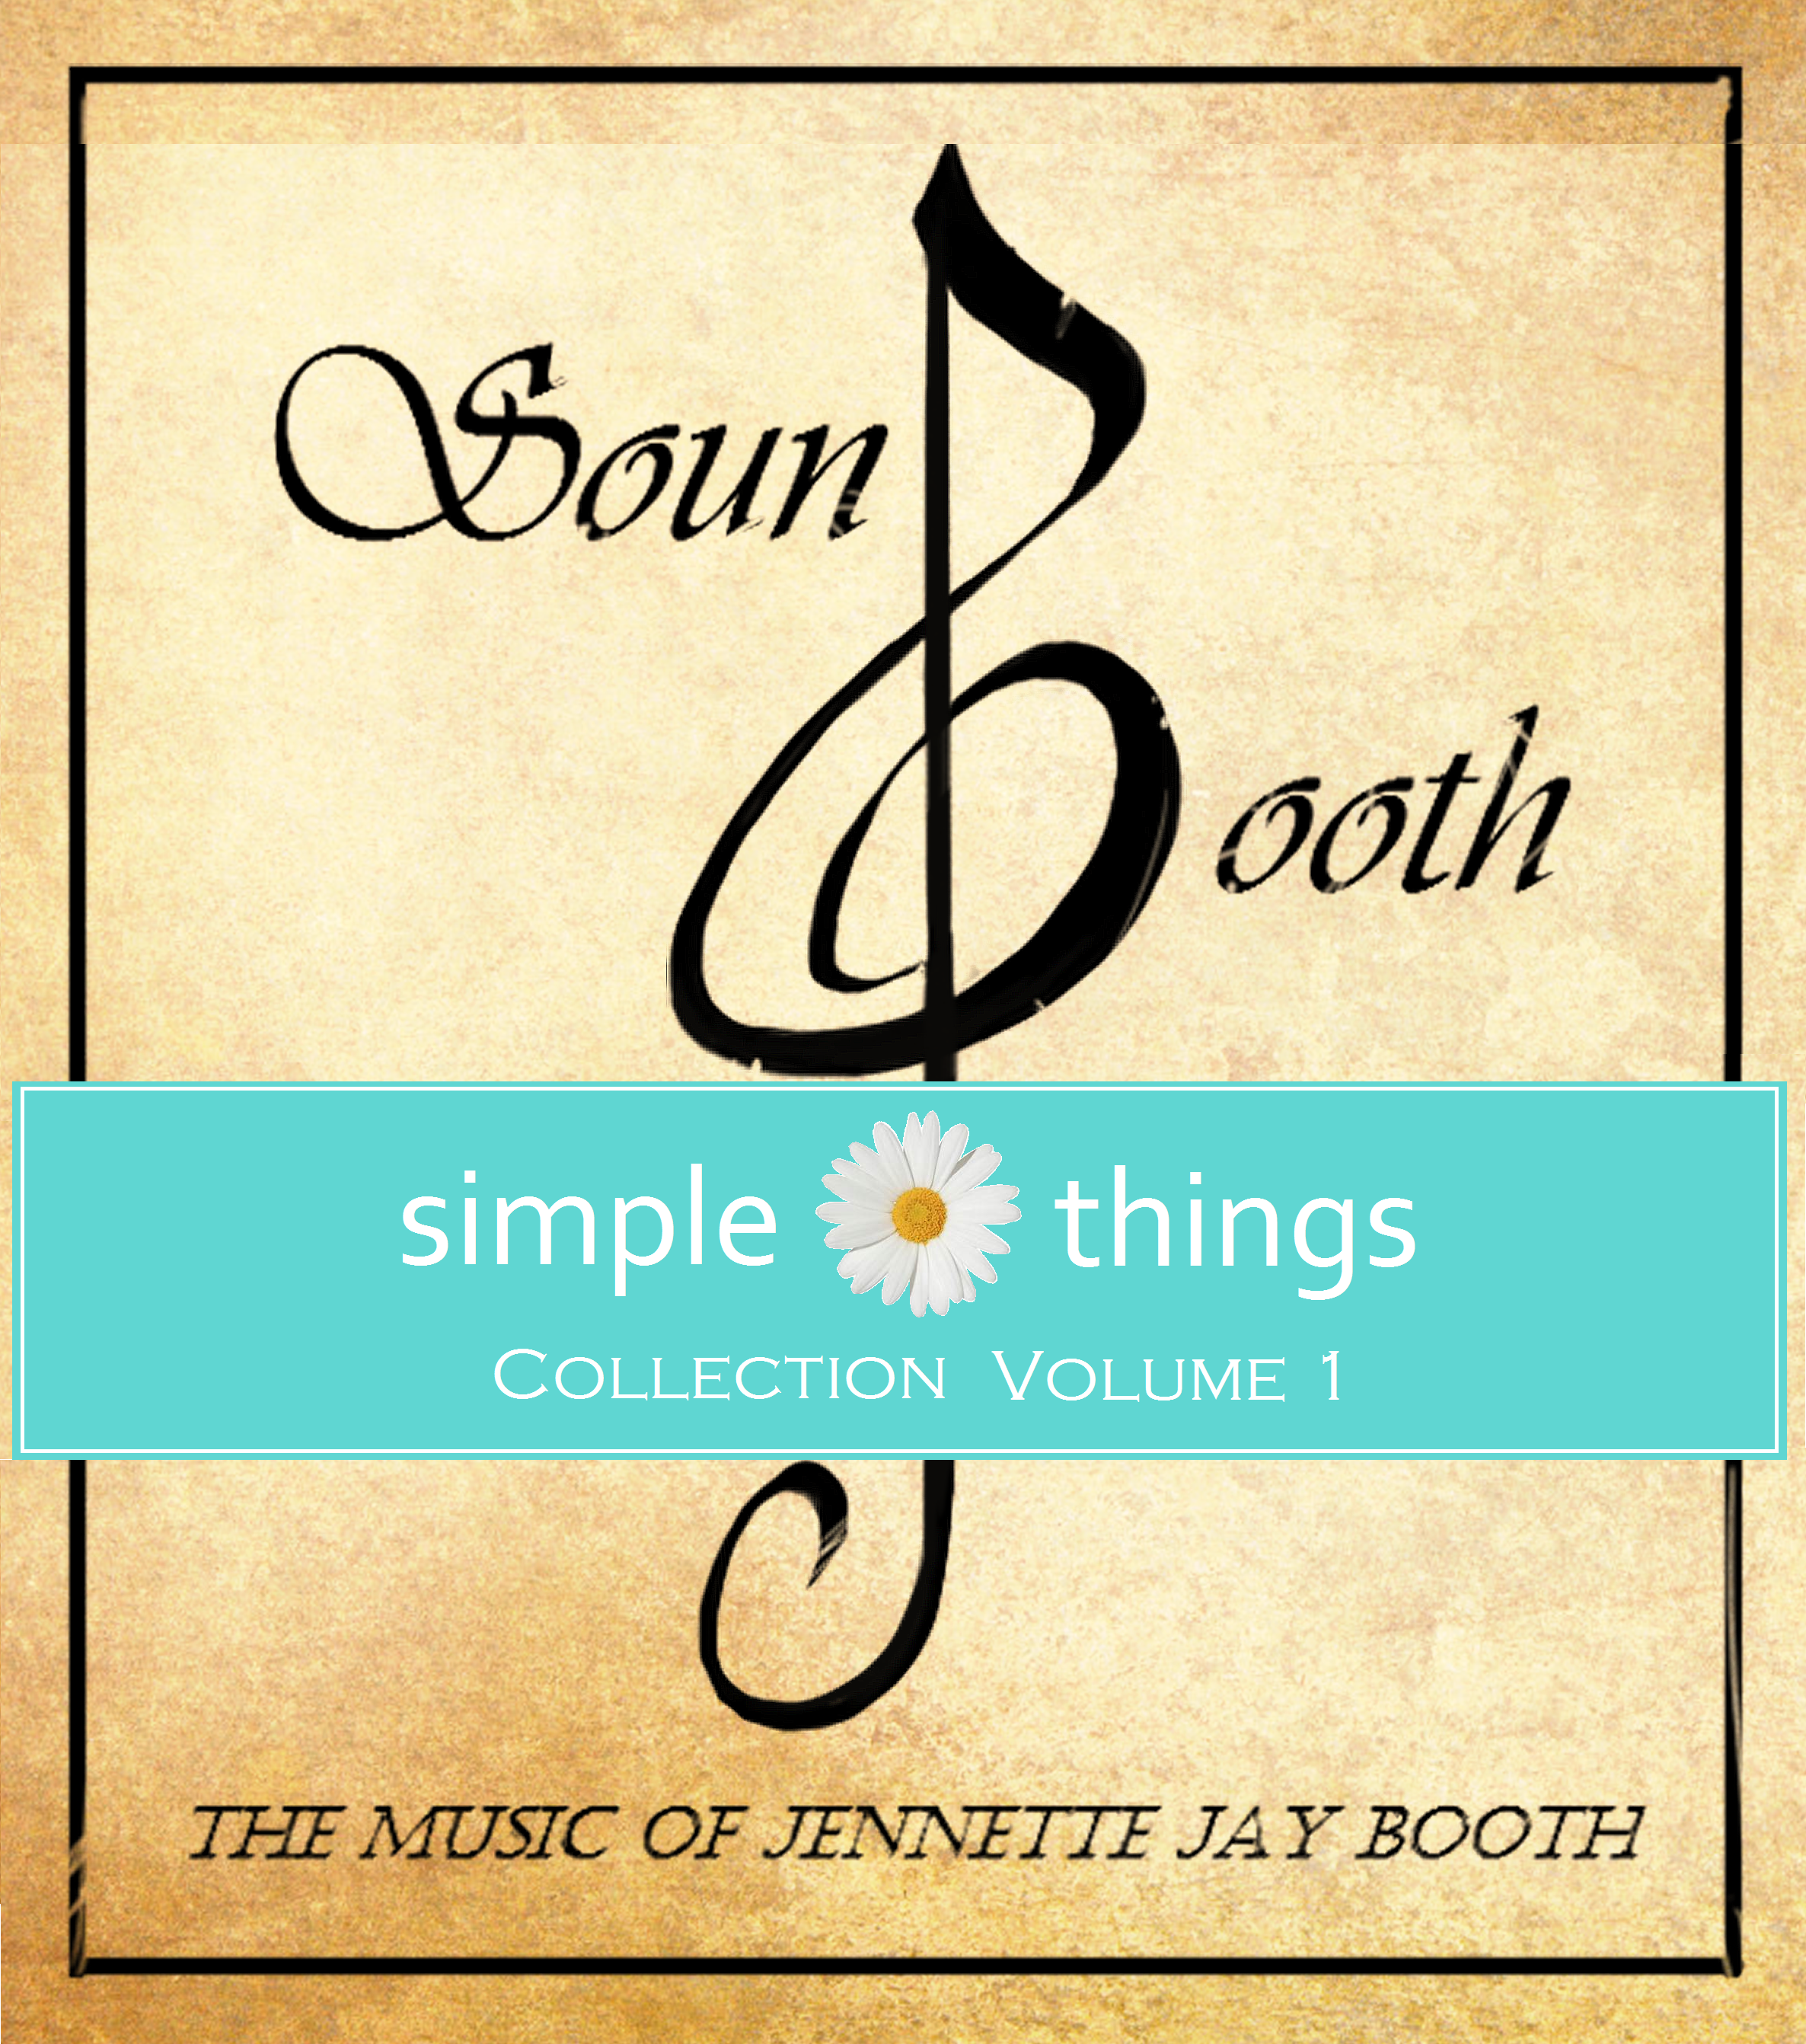 Simple_sound_booth_logo_2